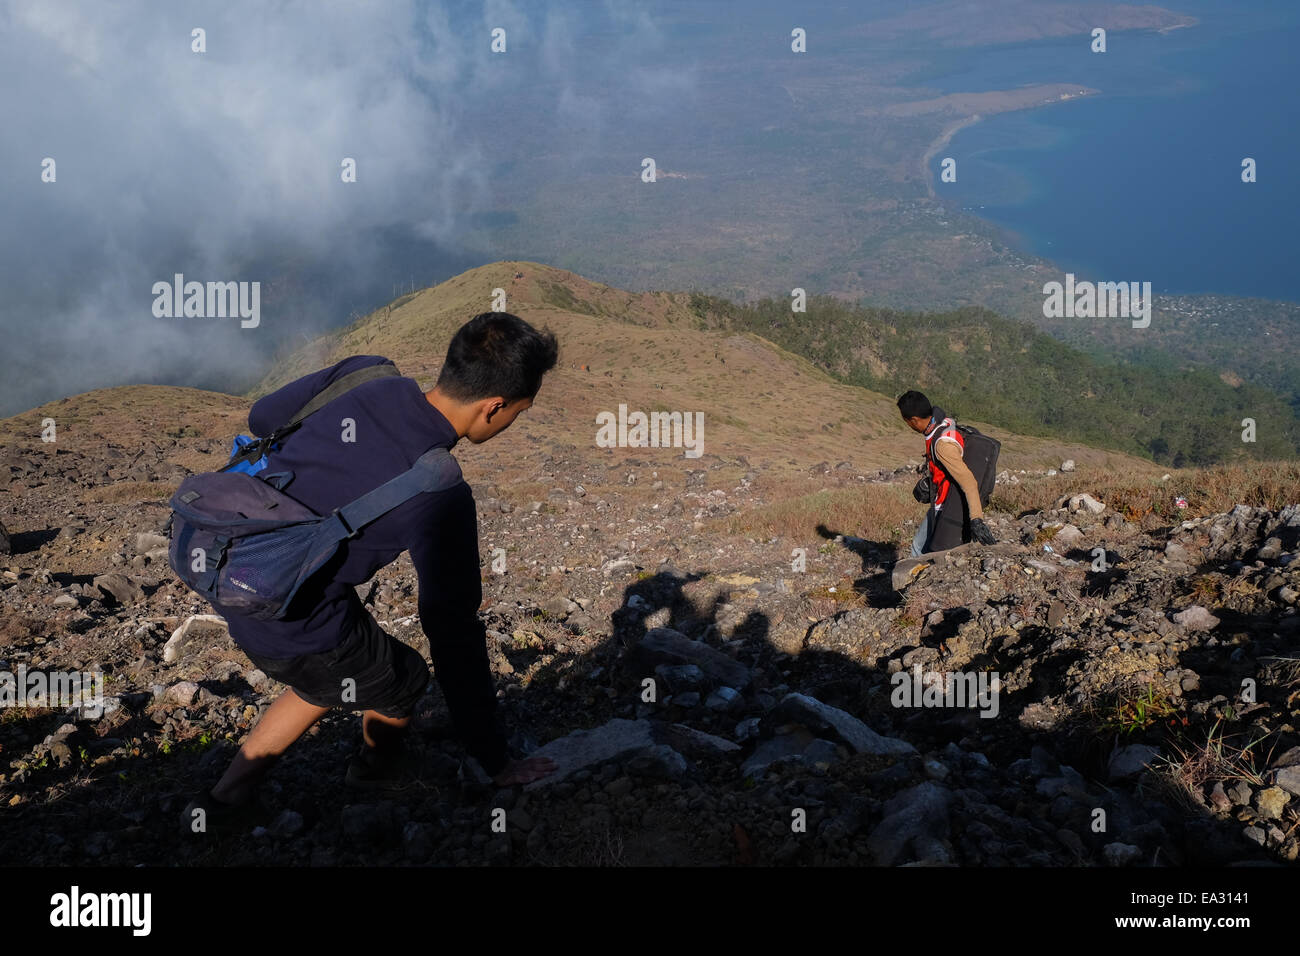 Mountaineering activity atop Ile (Mount Lewotolok), Lembata Island, East Nusa Tenggara, Indonesia. - Stock Image